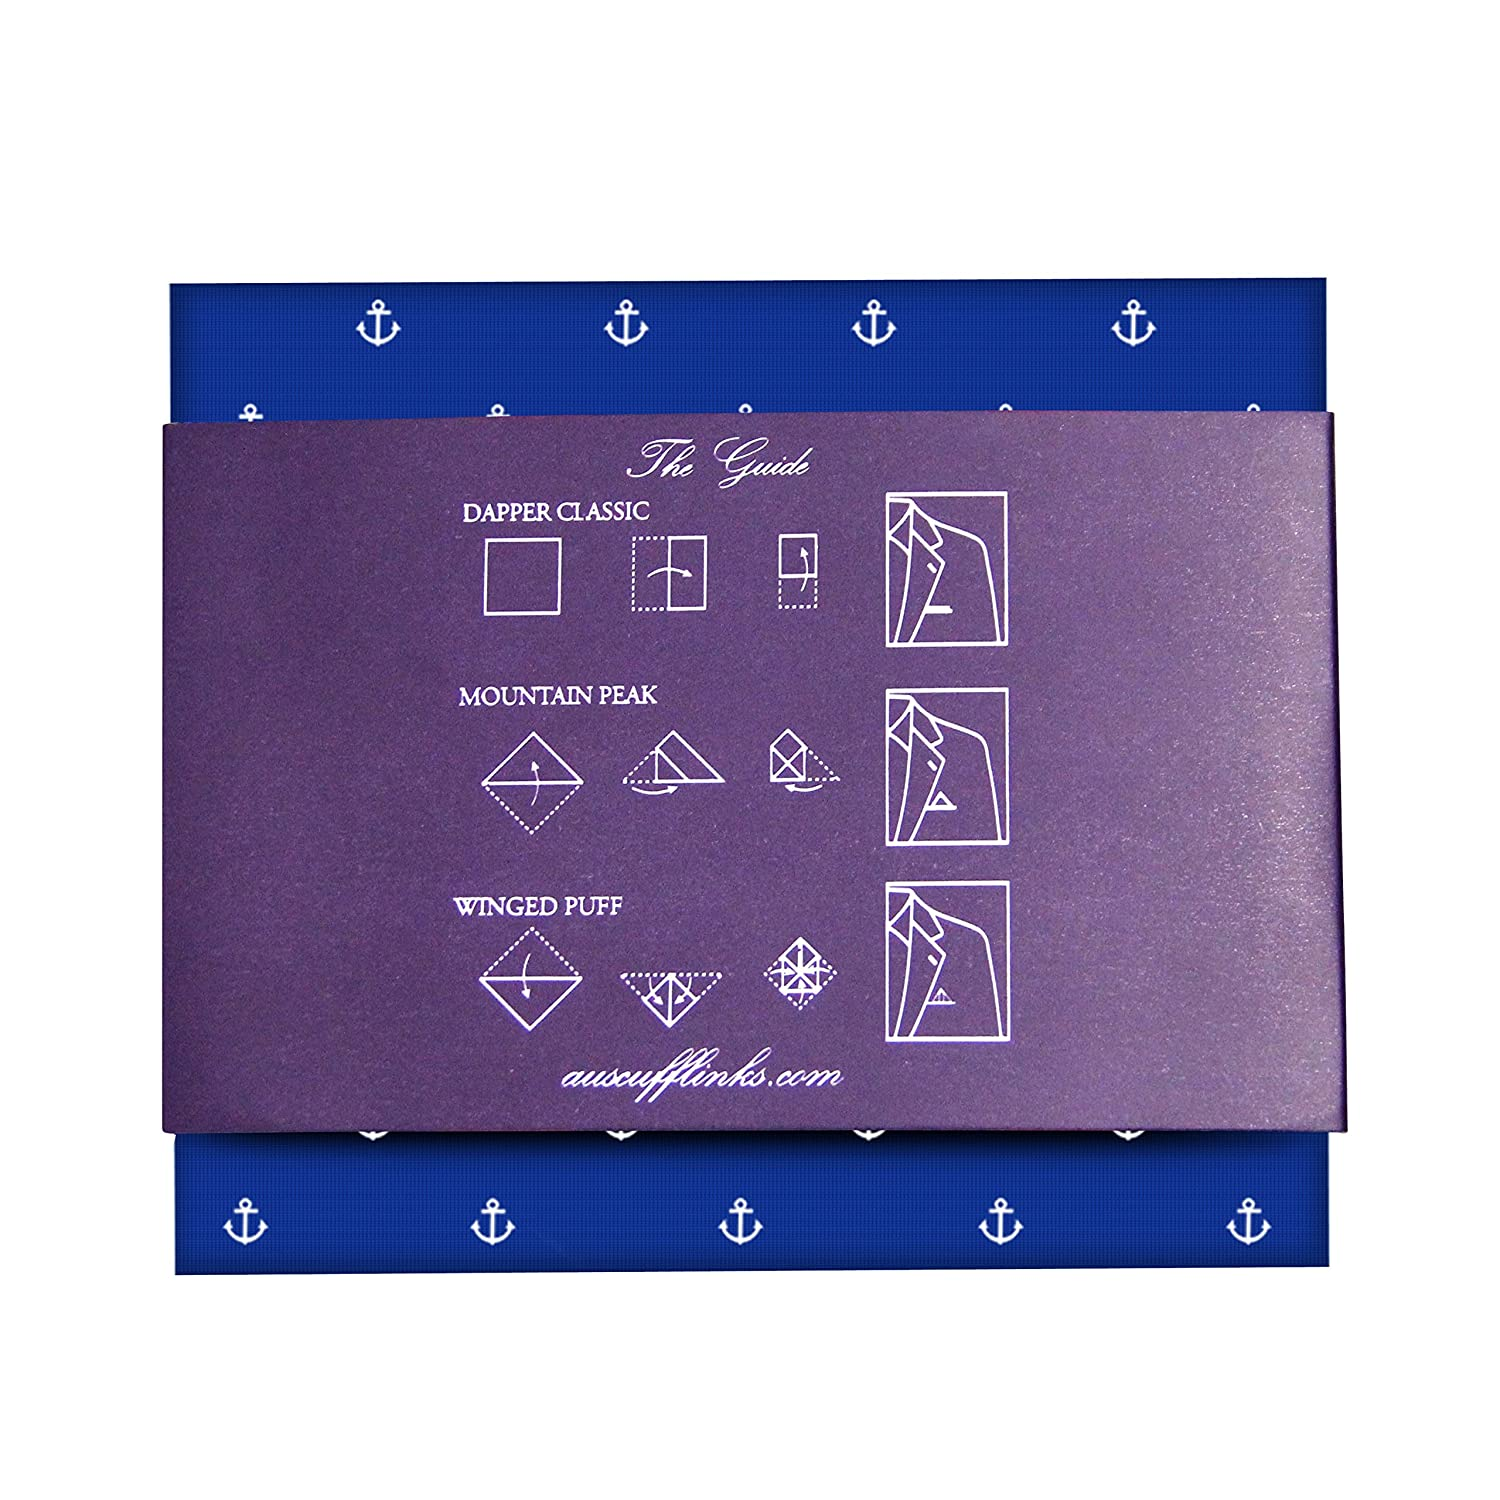 Groomsmen Accessories 5 Year Warranty Anchor Pocket Square Gifts for Men